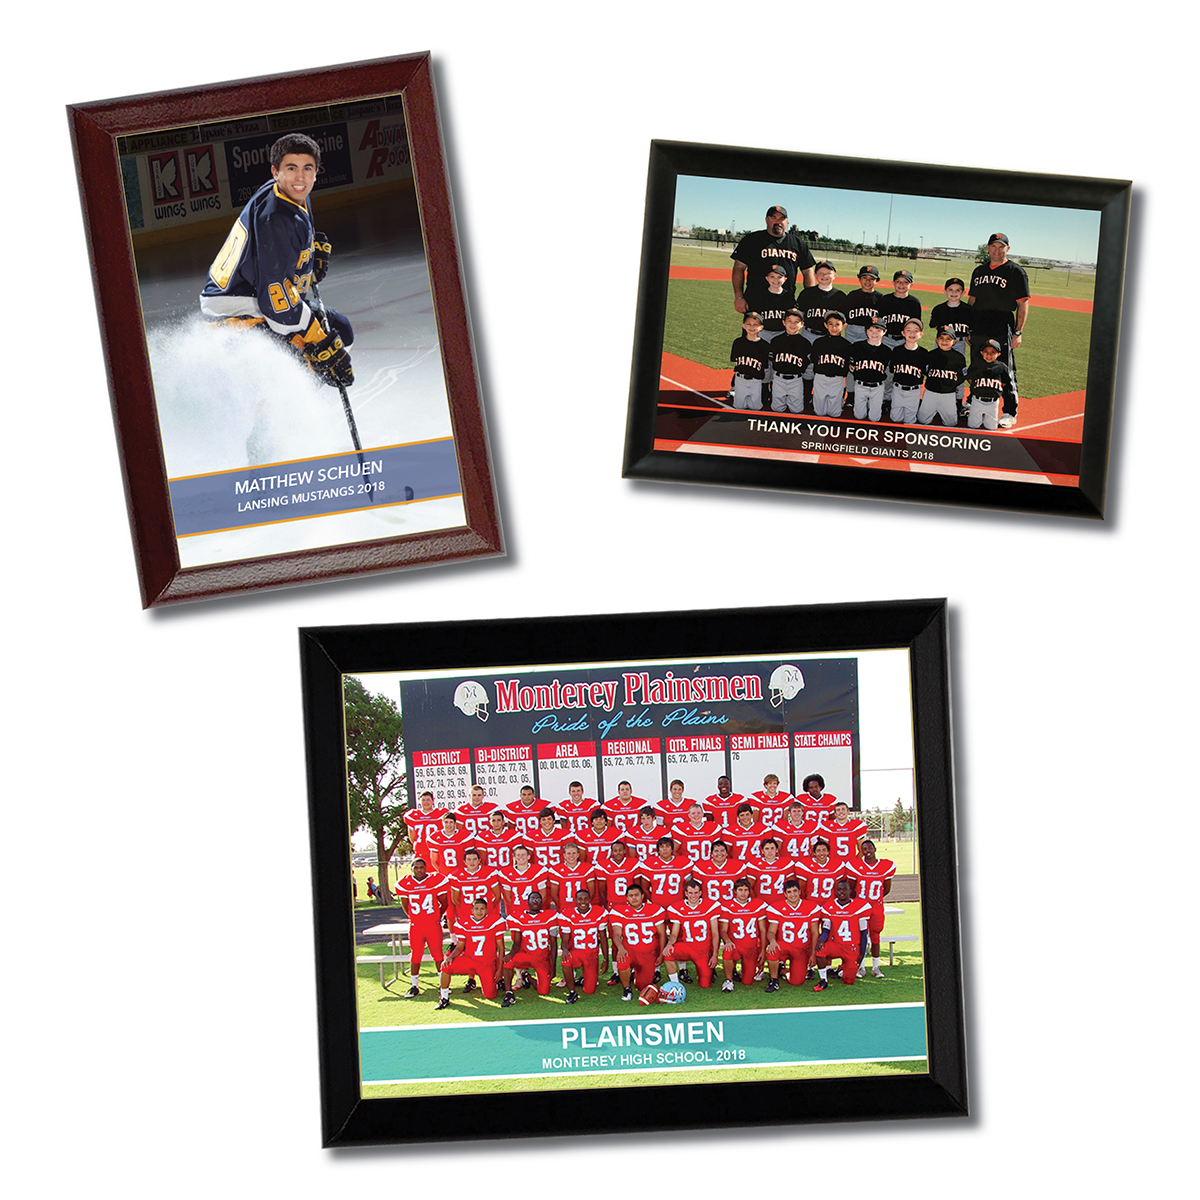 Plaques that show the use of banners and overlays on team and individual photos